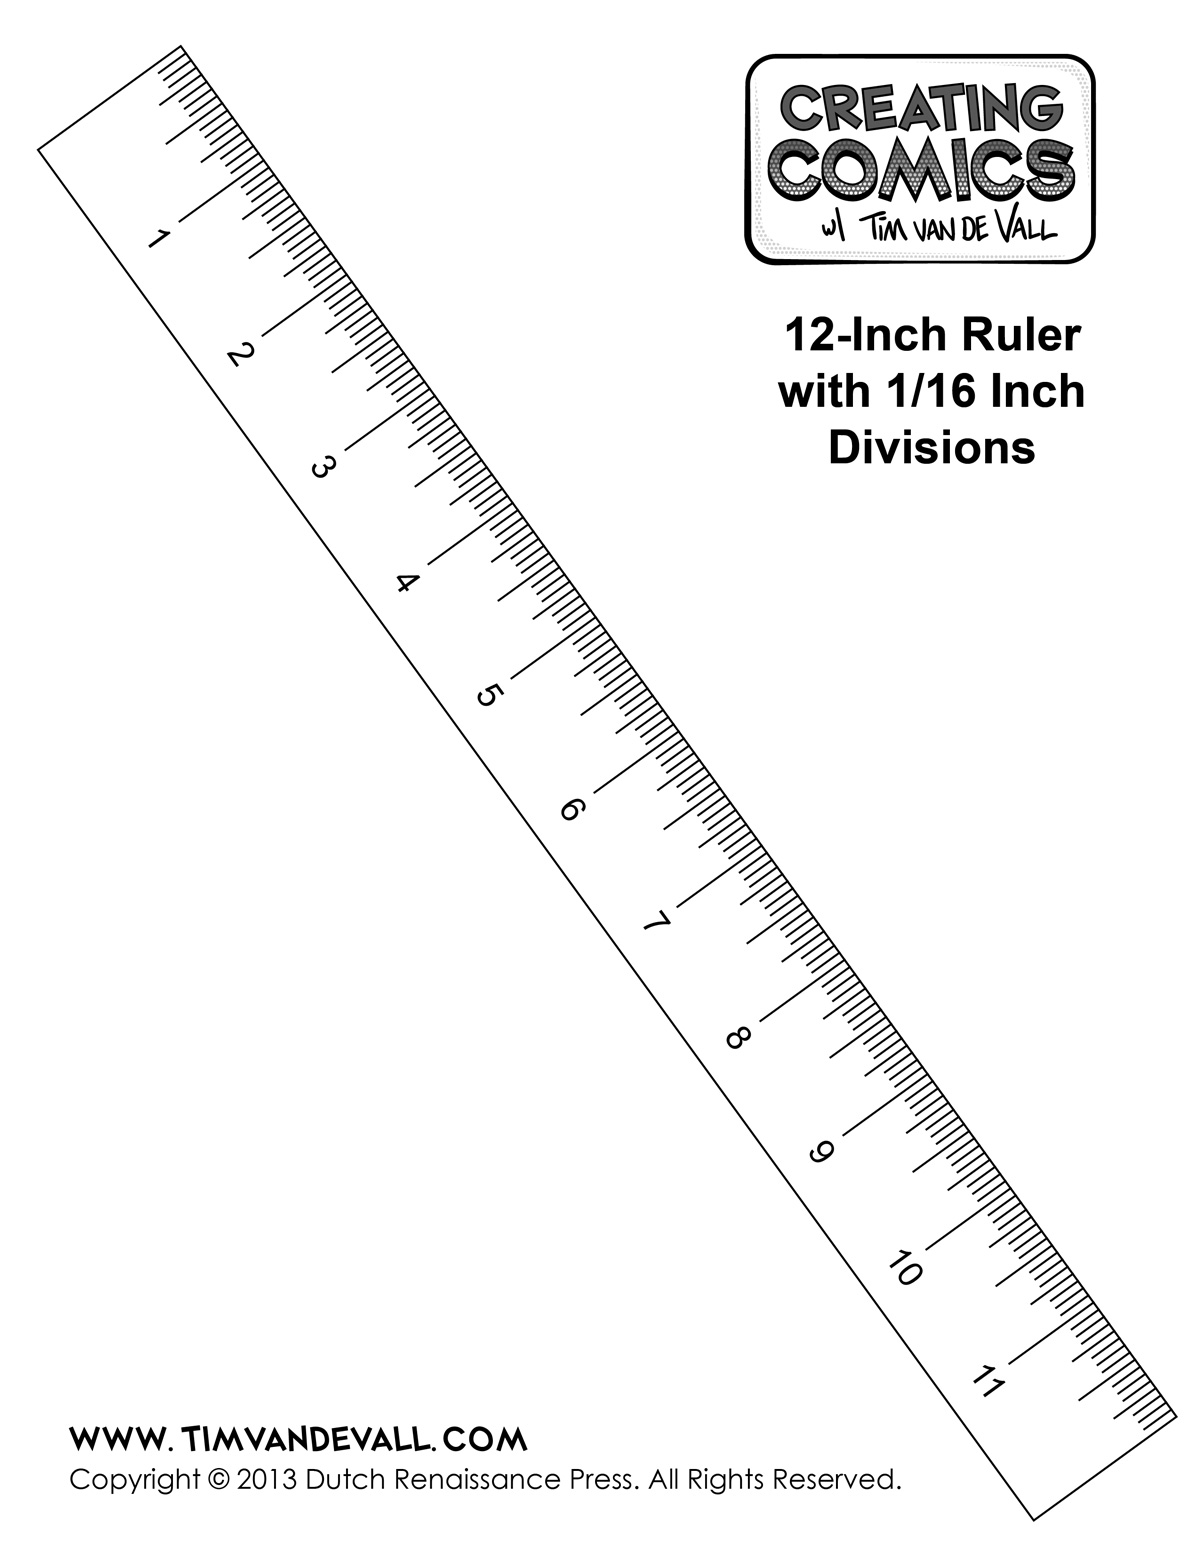 Te Bouwen En Wonen Ruler Measurements In Centimeters